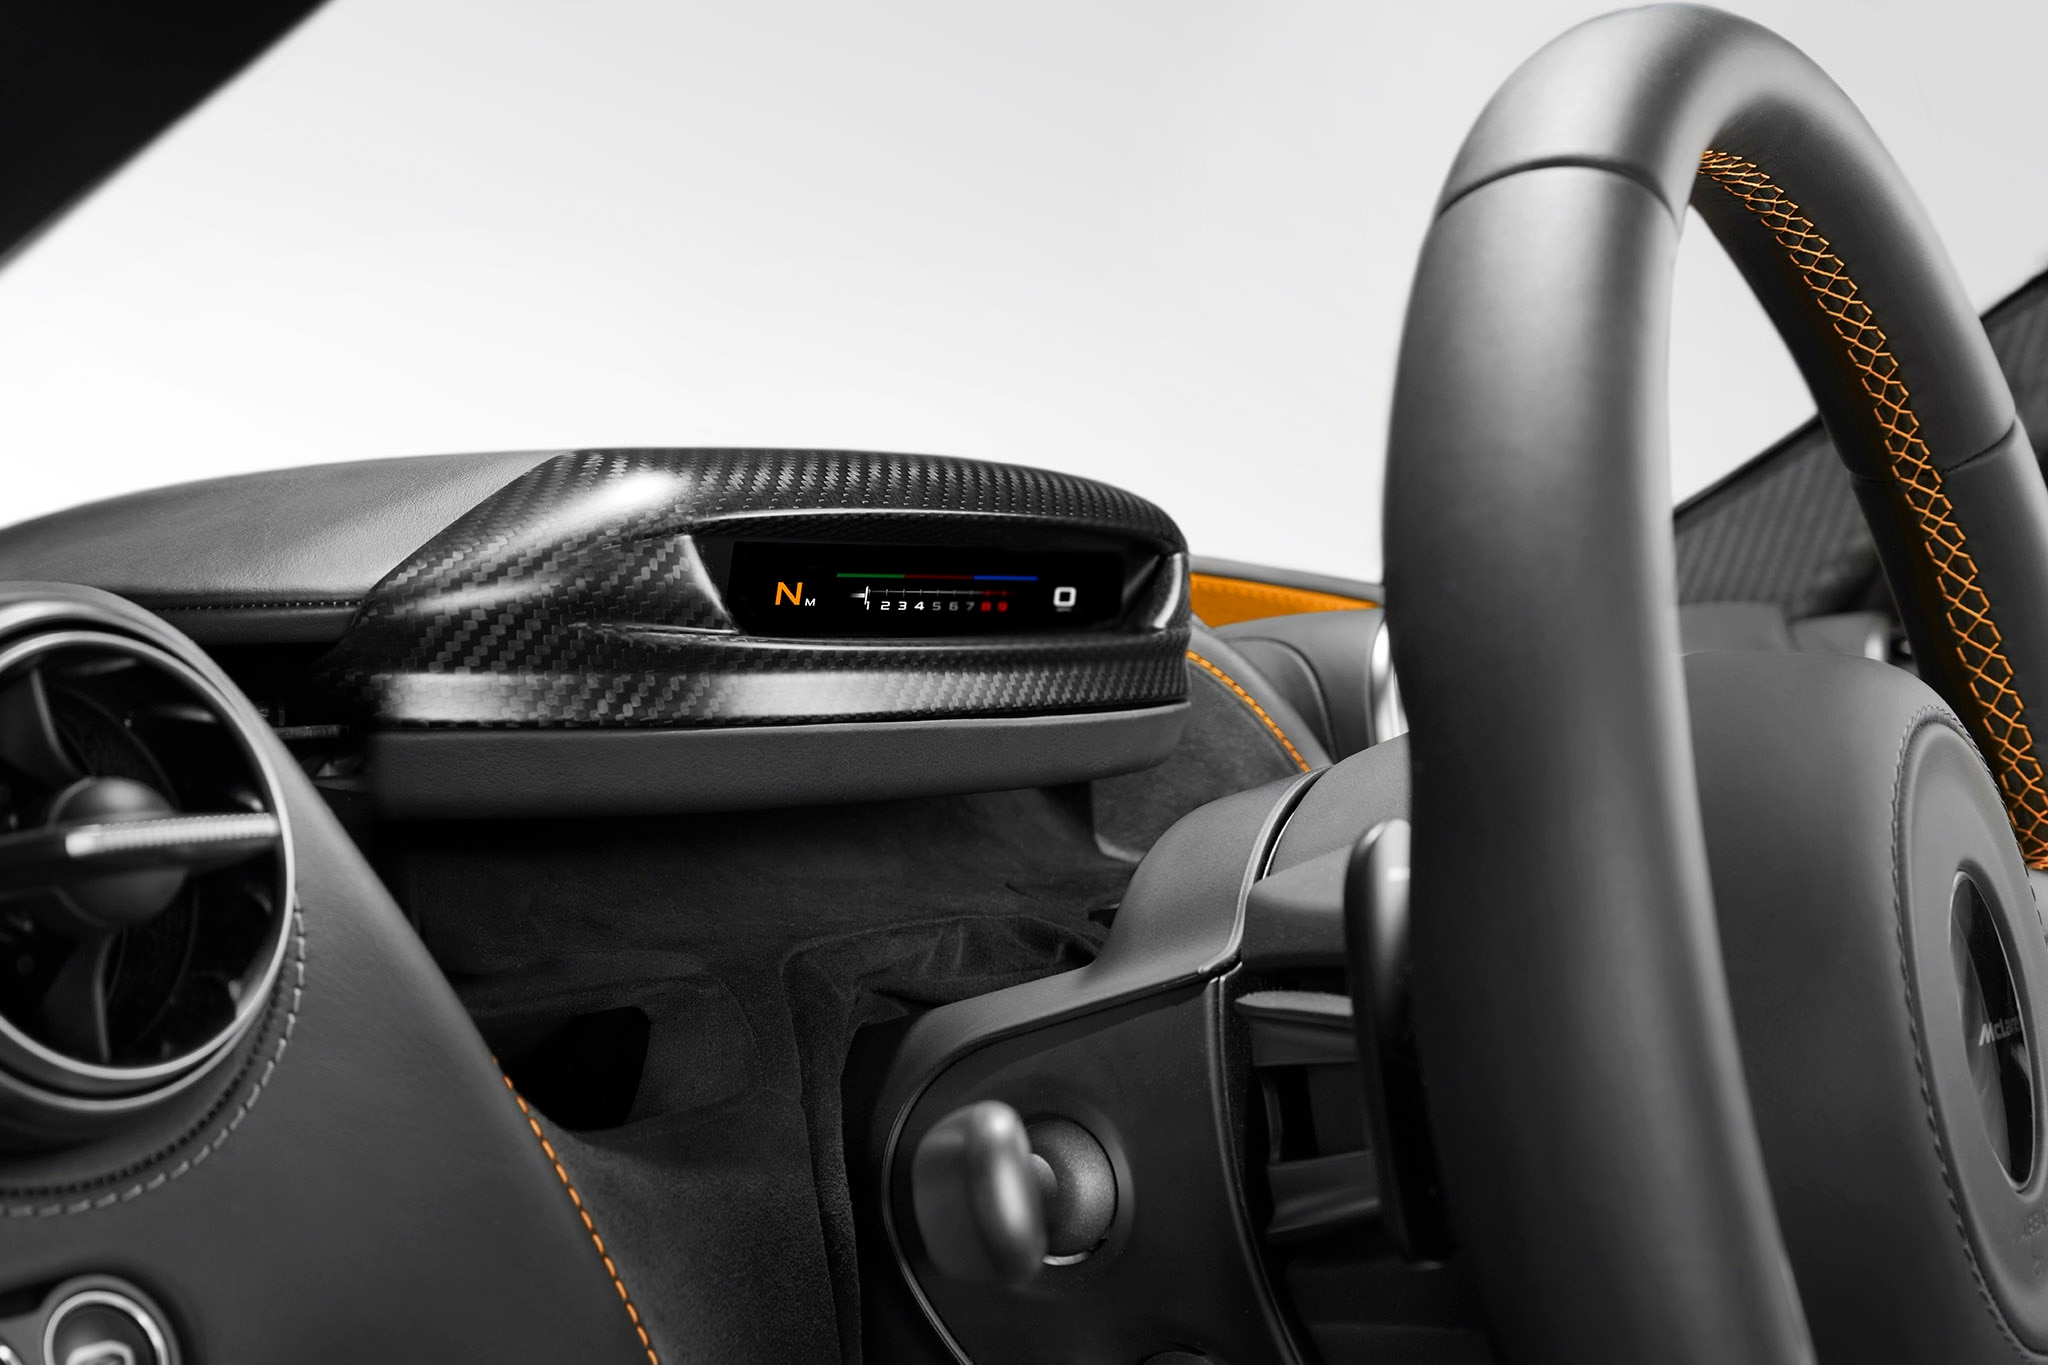 2018 McLaren 720S Folding Driver Display Image Two_final_release Date 010317